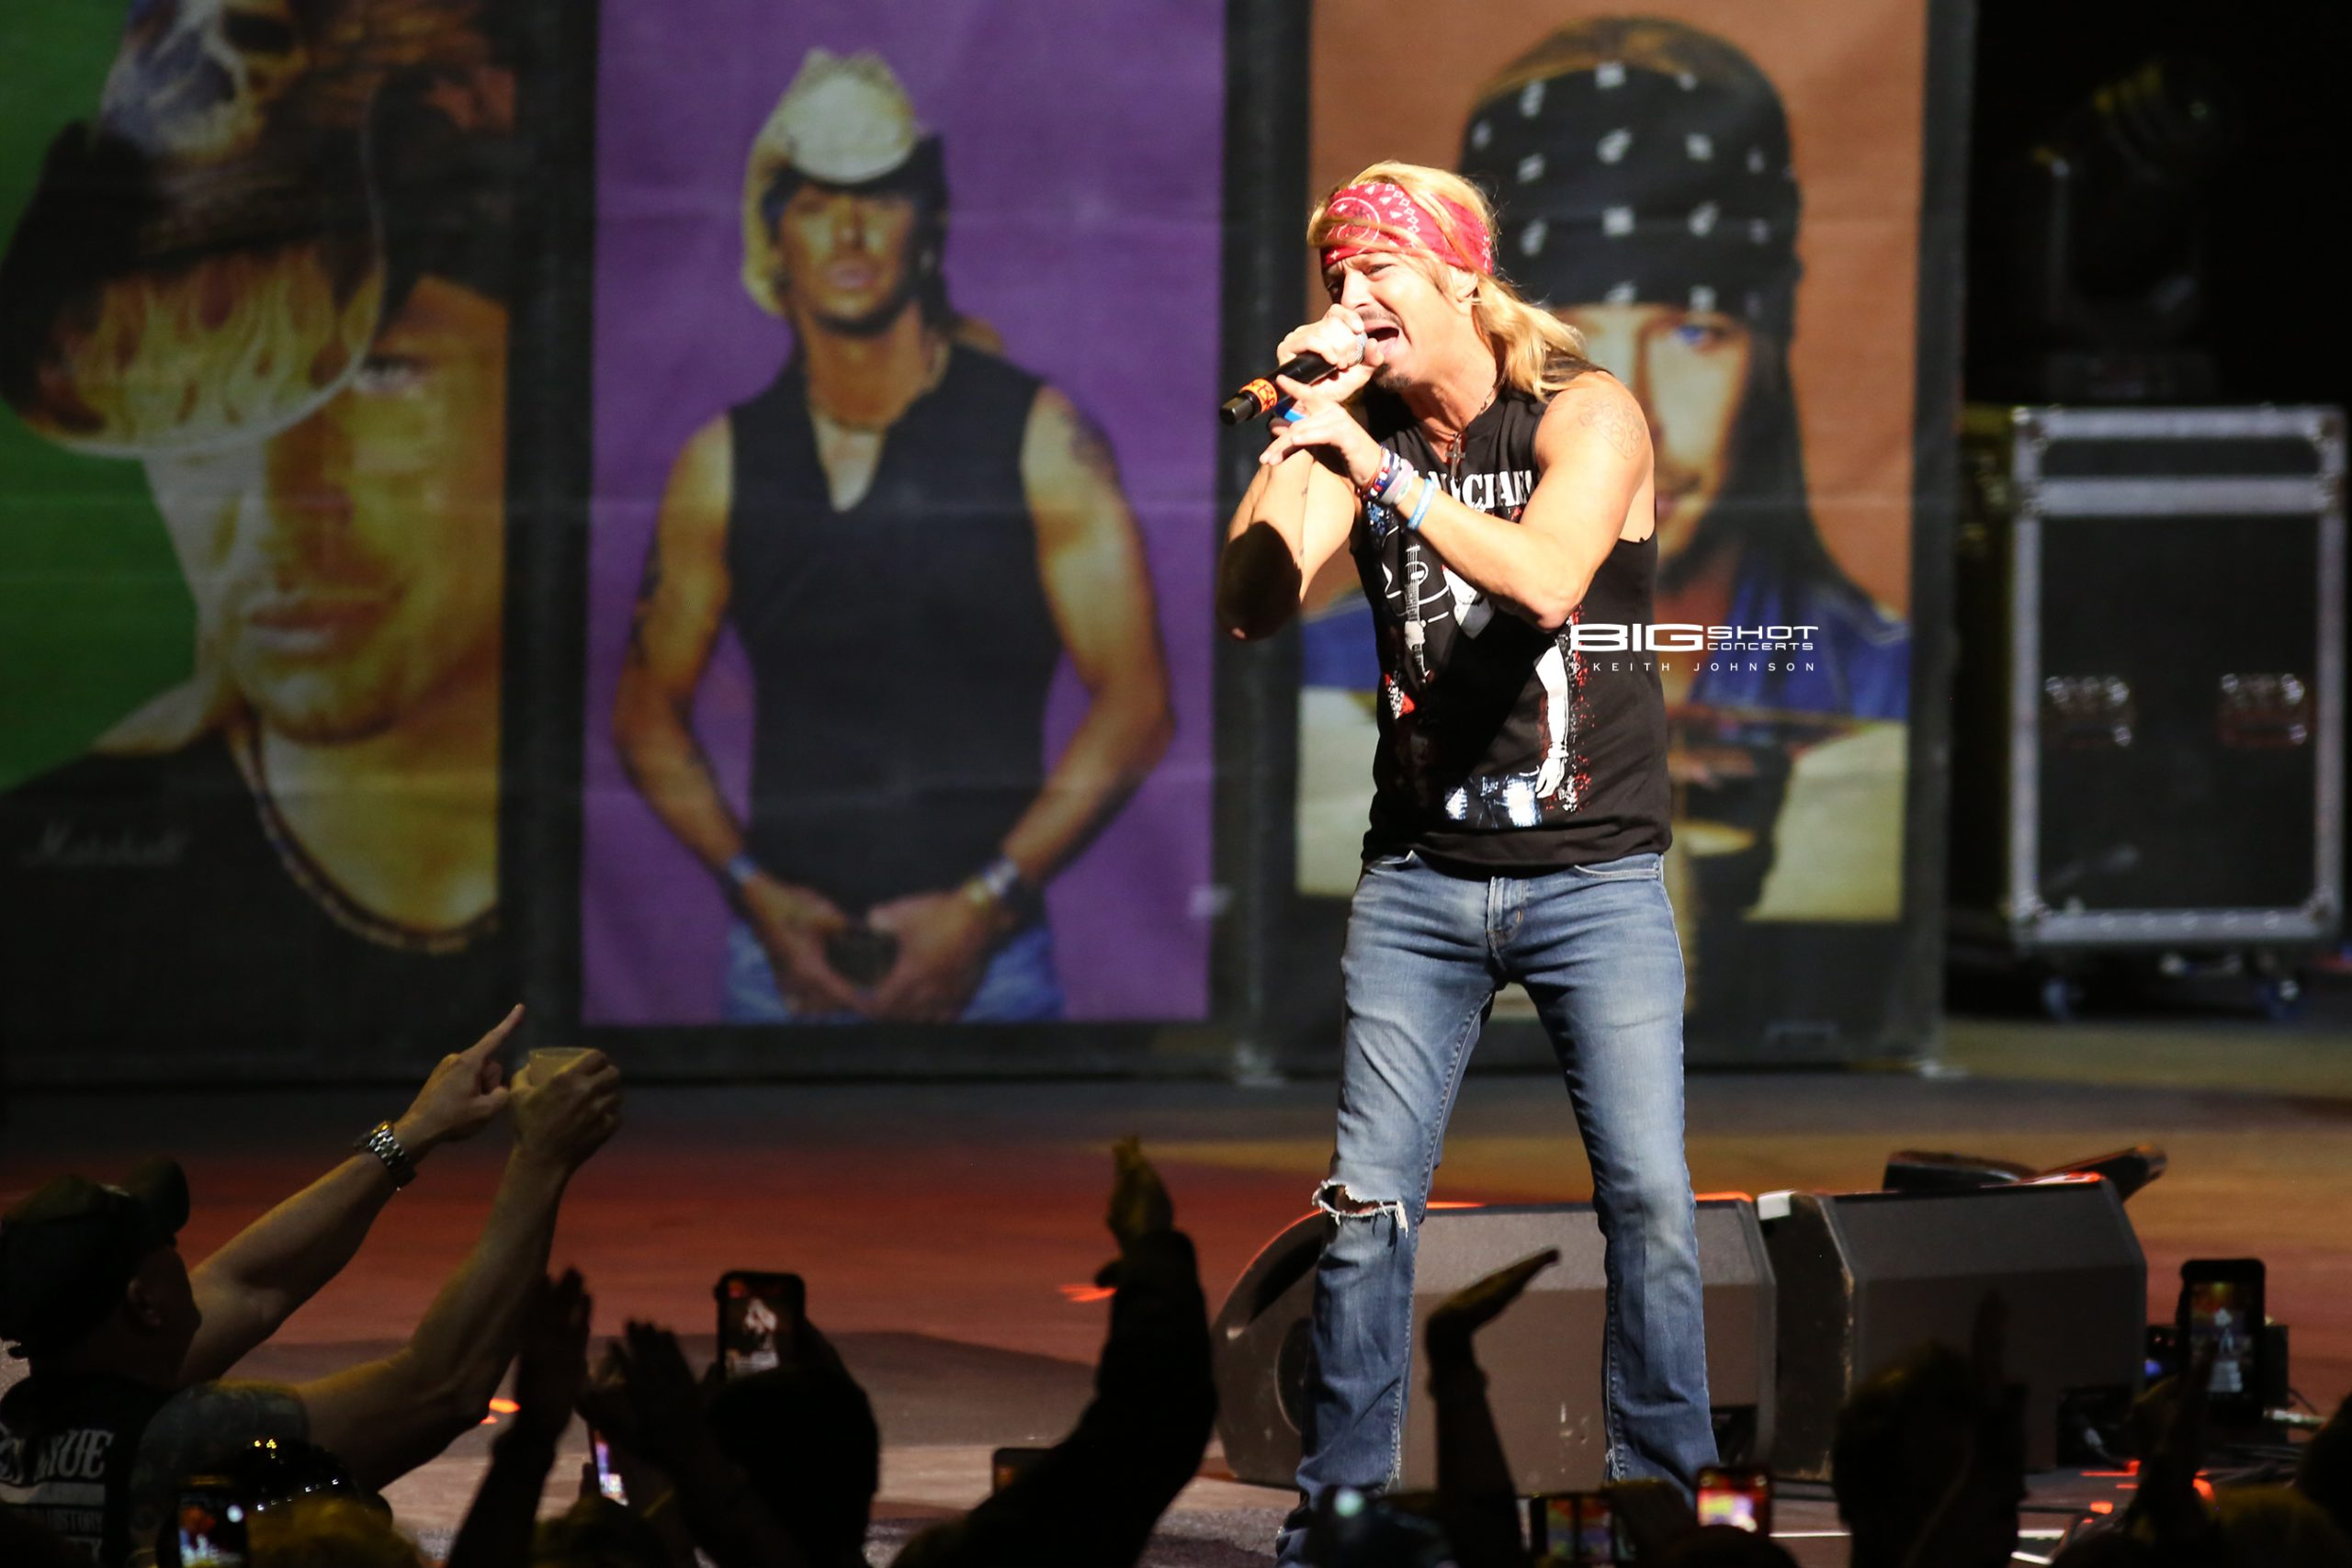 Bret Michaels Concert 2019